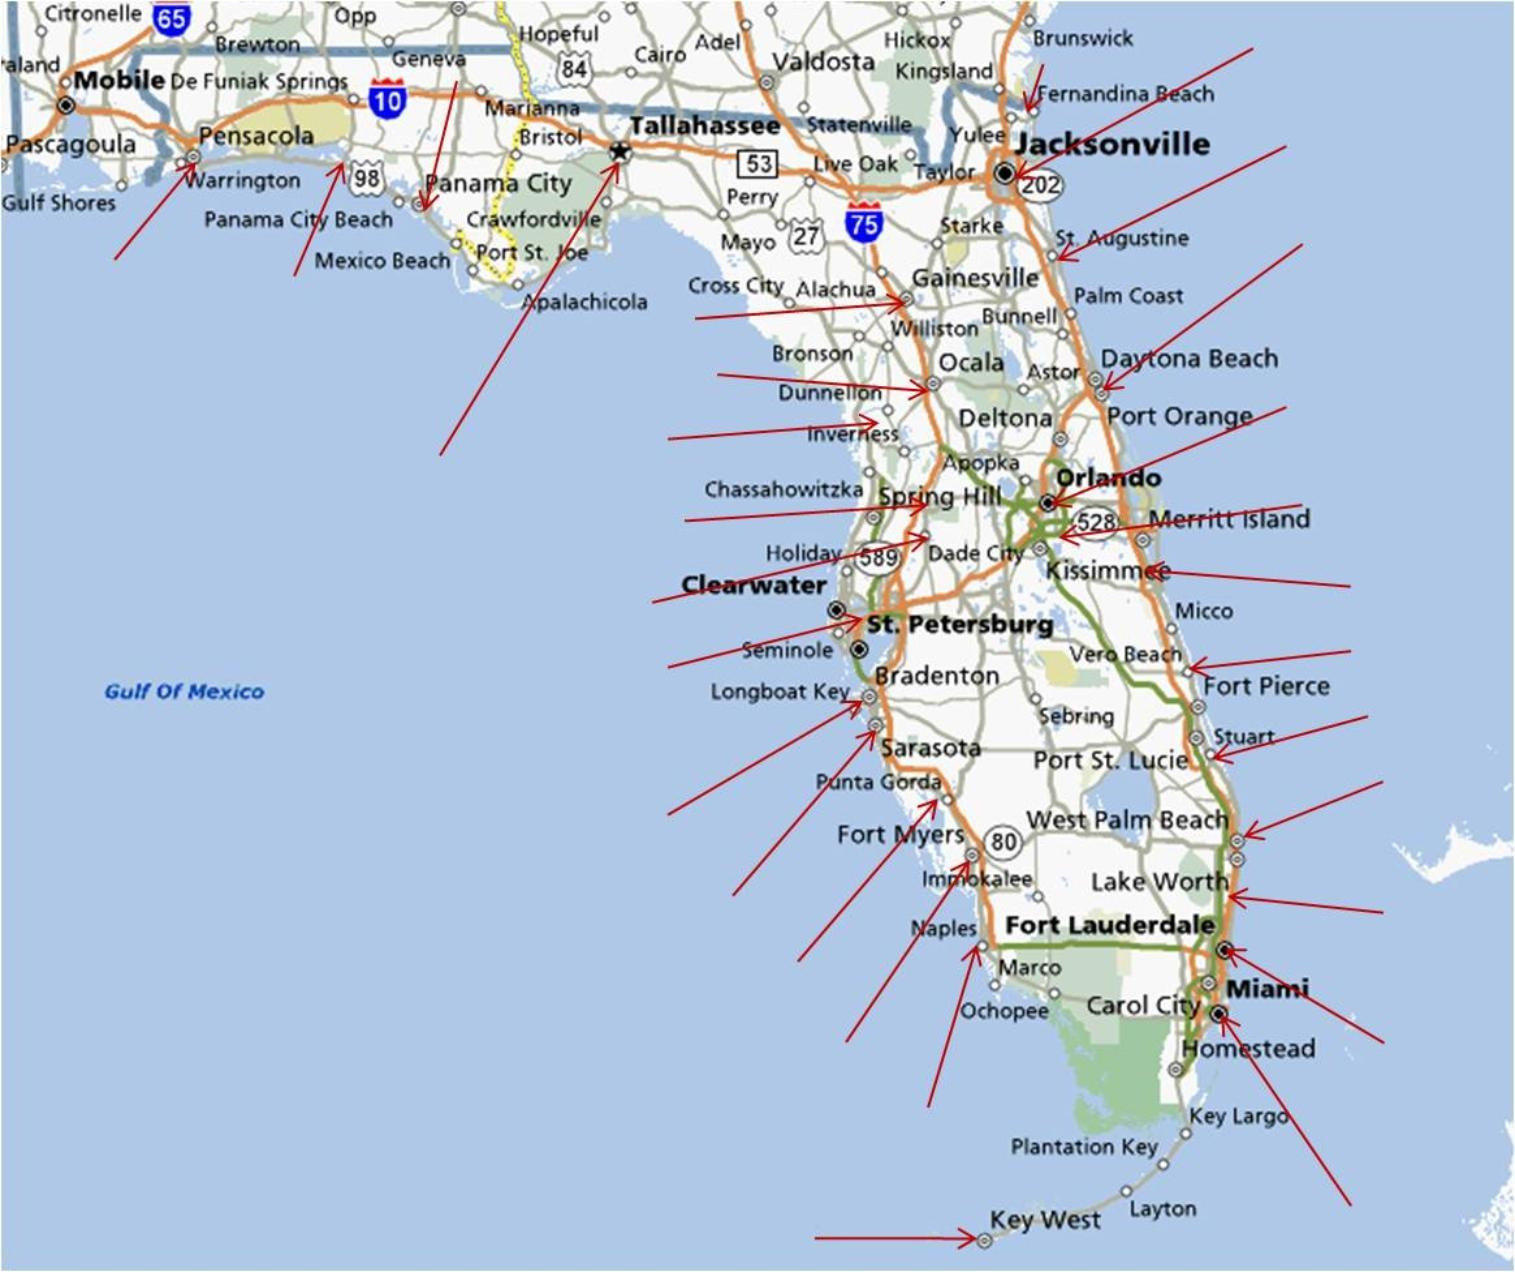 Mexico Beach Florida Map From Windsurfaddicts 9 - Judecelestin2010 - Map Of Clearwater Florida Beaches